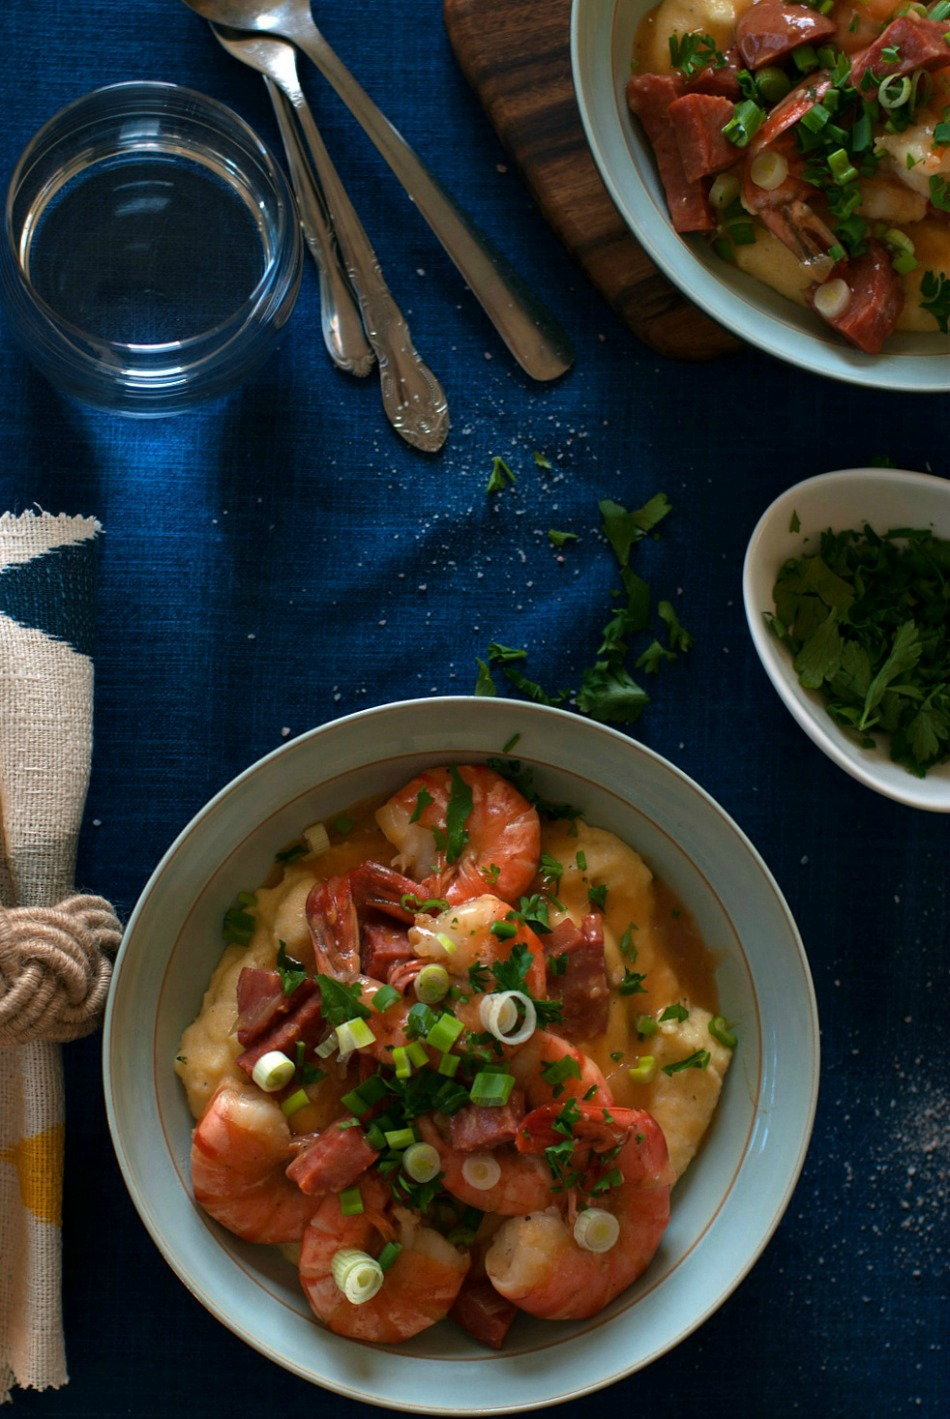 Audrey's Shrimp and Grits